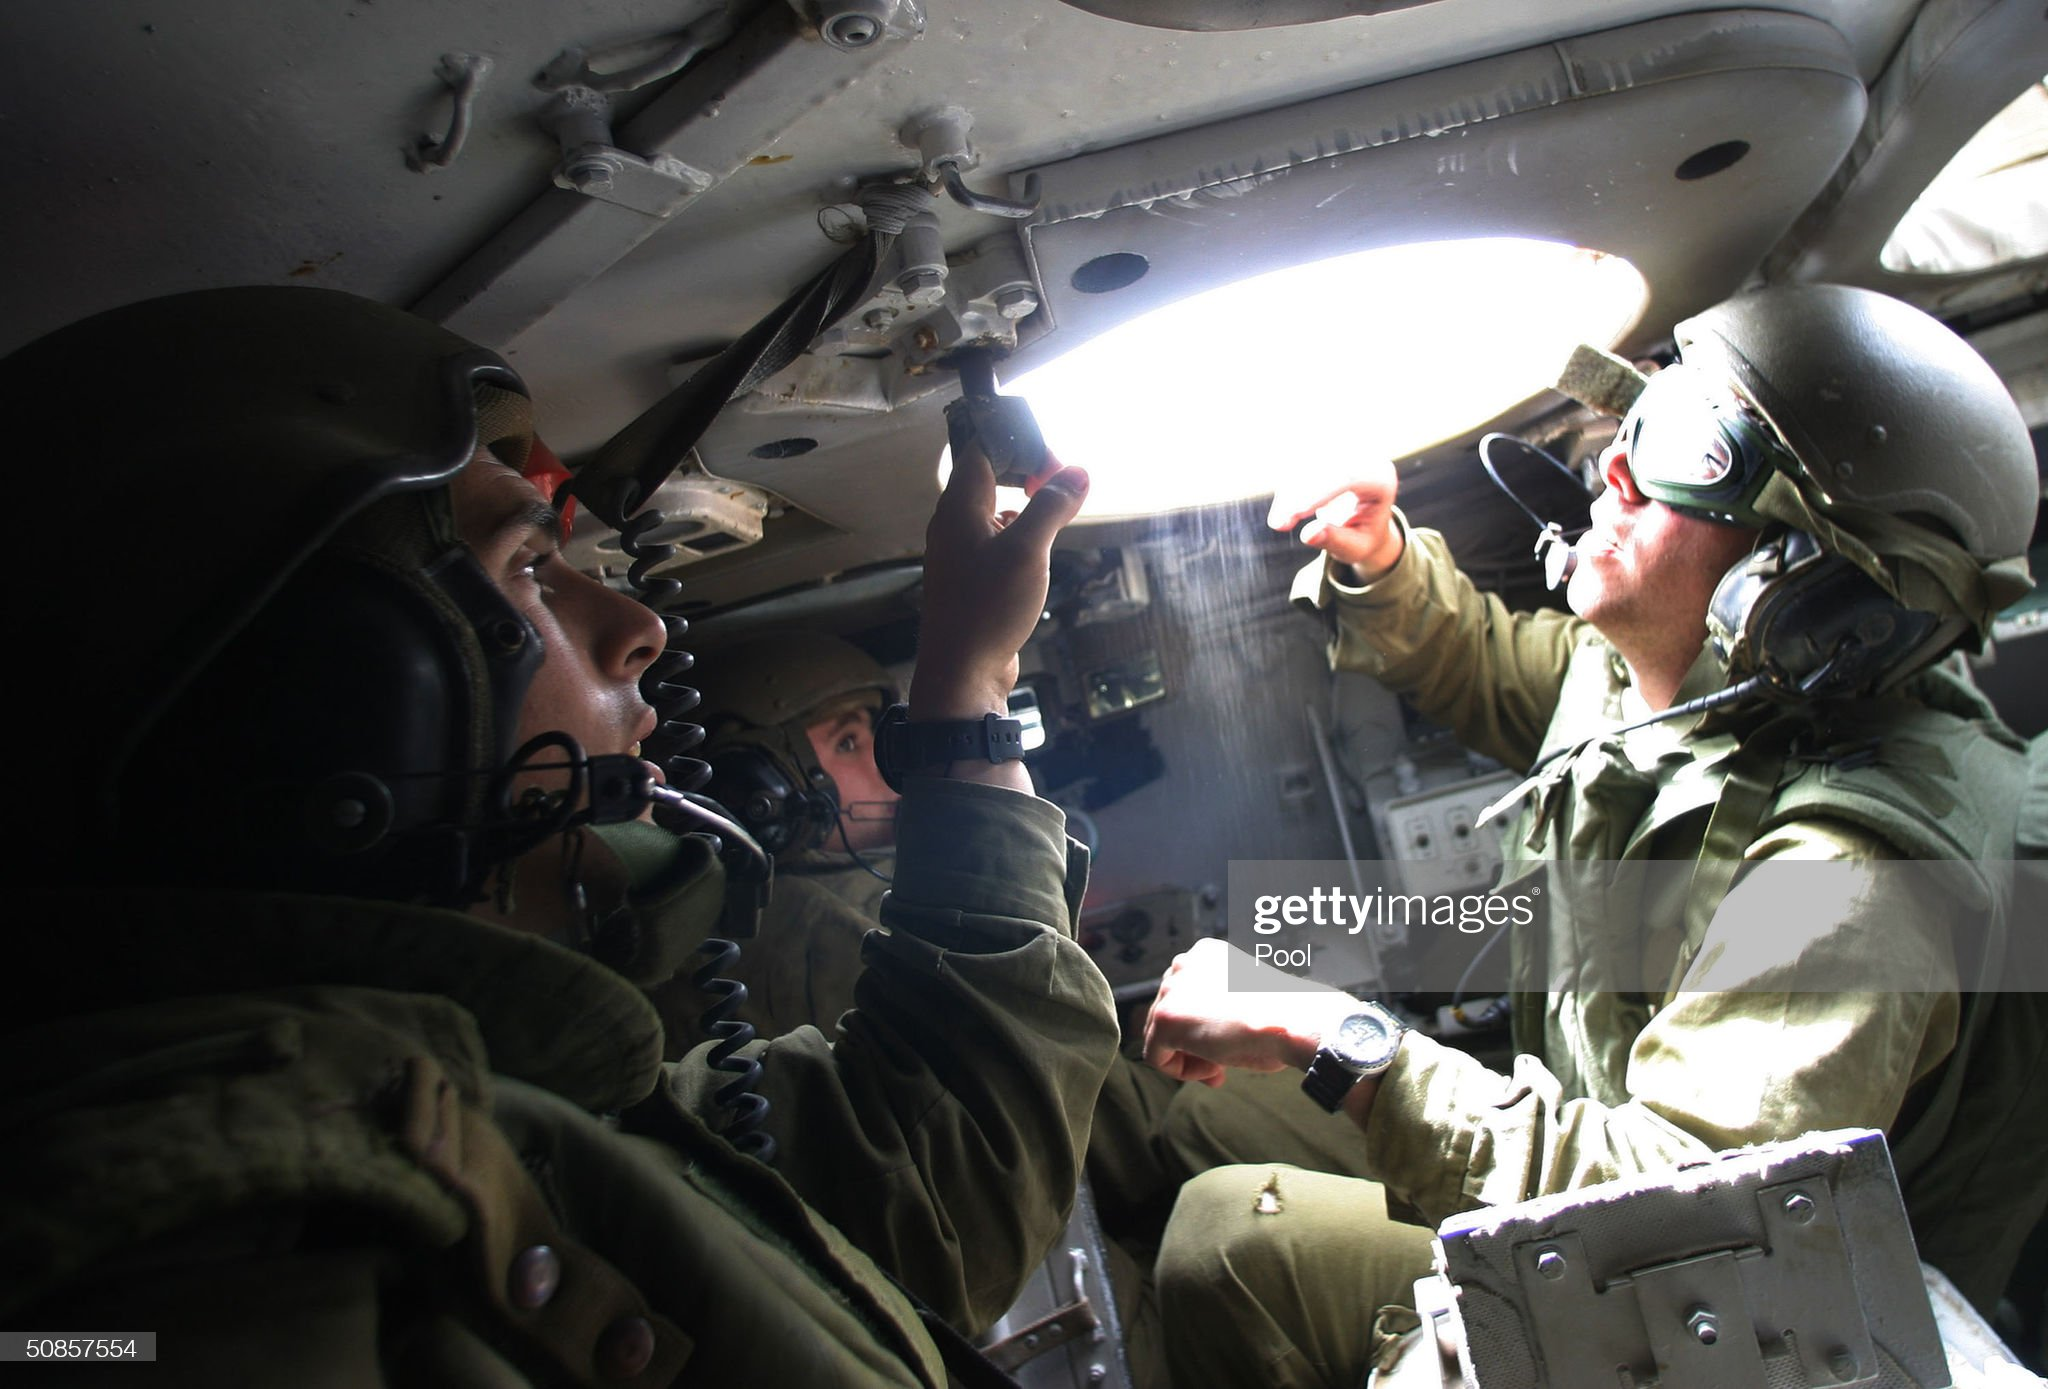 https://media.gettyimages.com/photos/israeli-soldiers-sit-inside-the-armoured-personnel-carrier-during-the-picture-id50857554?s=2048x2048